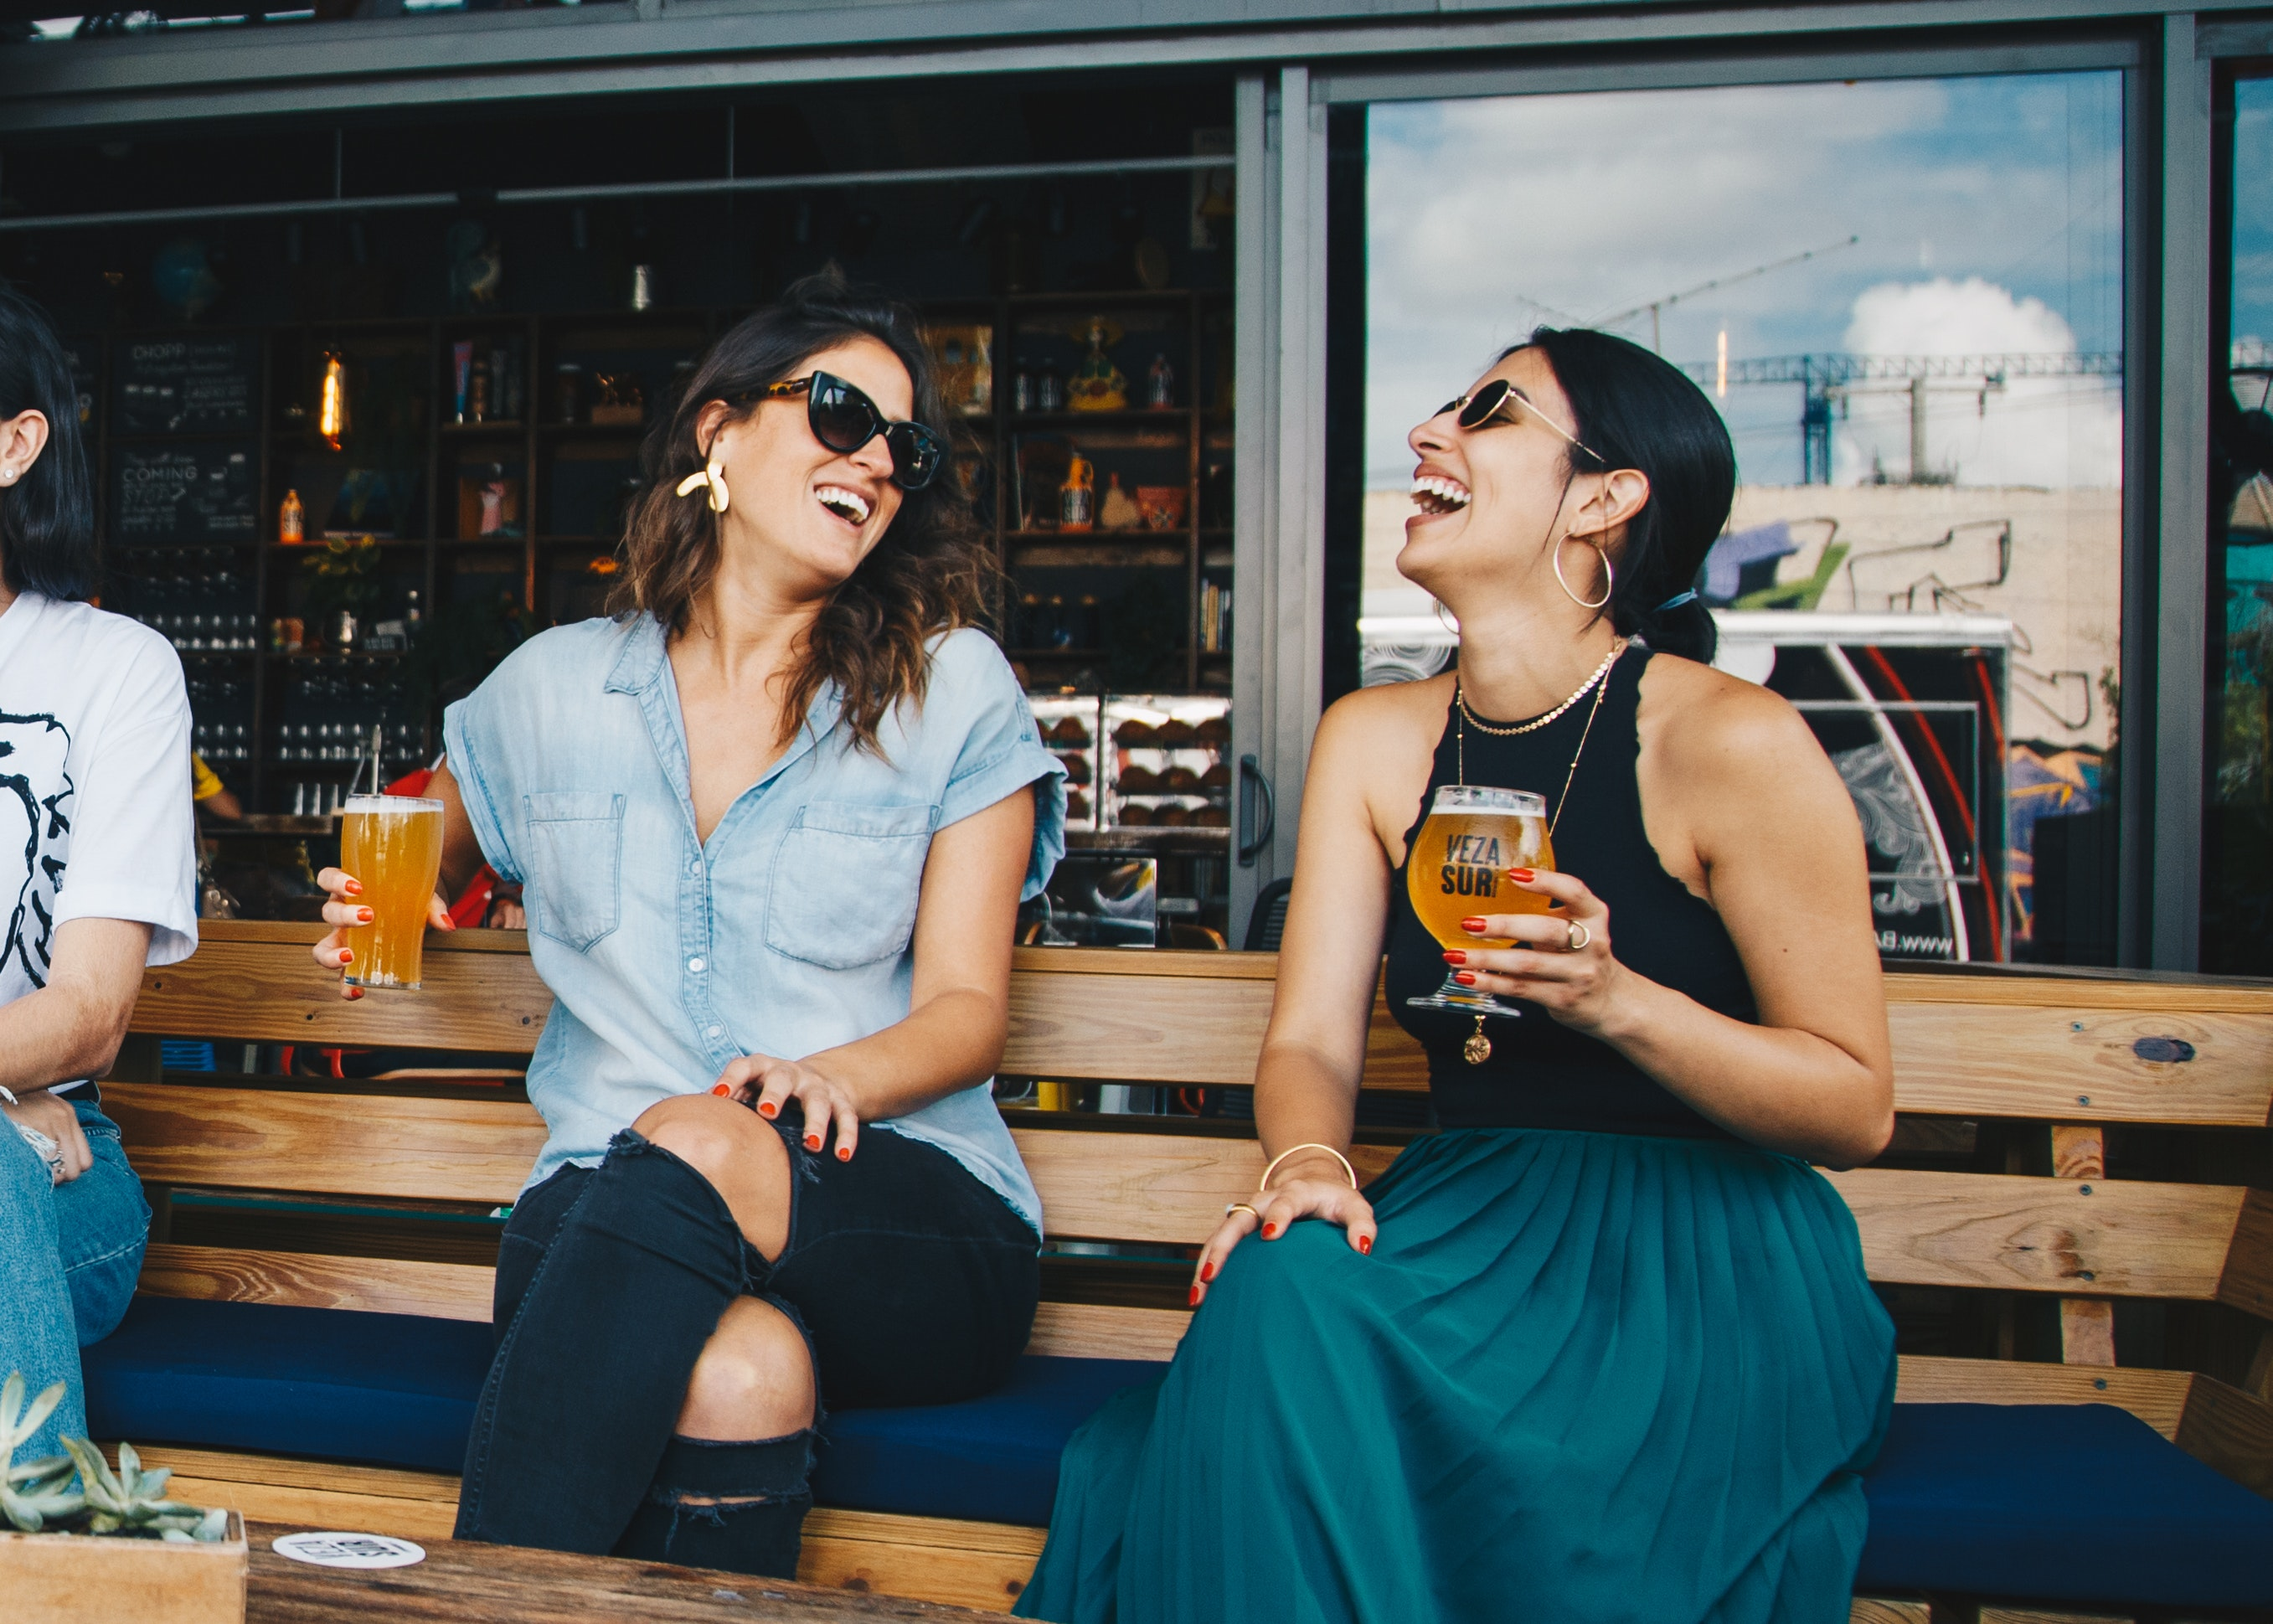 Ladies chatting while drinking beer